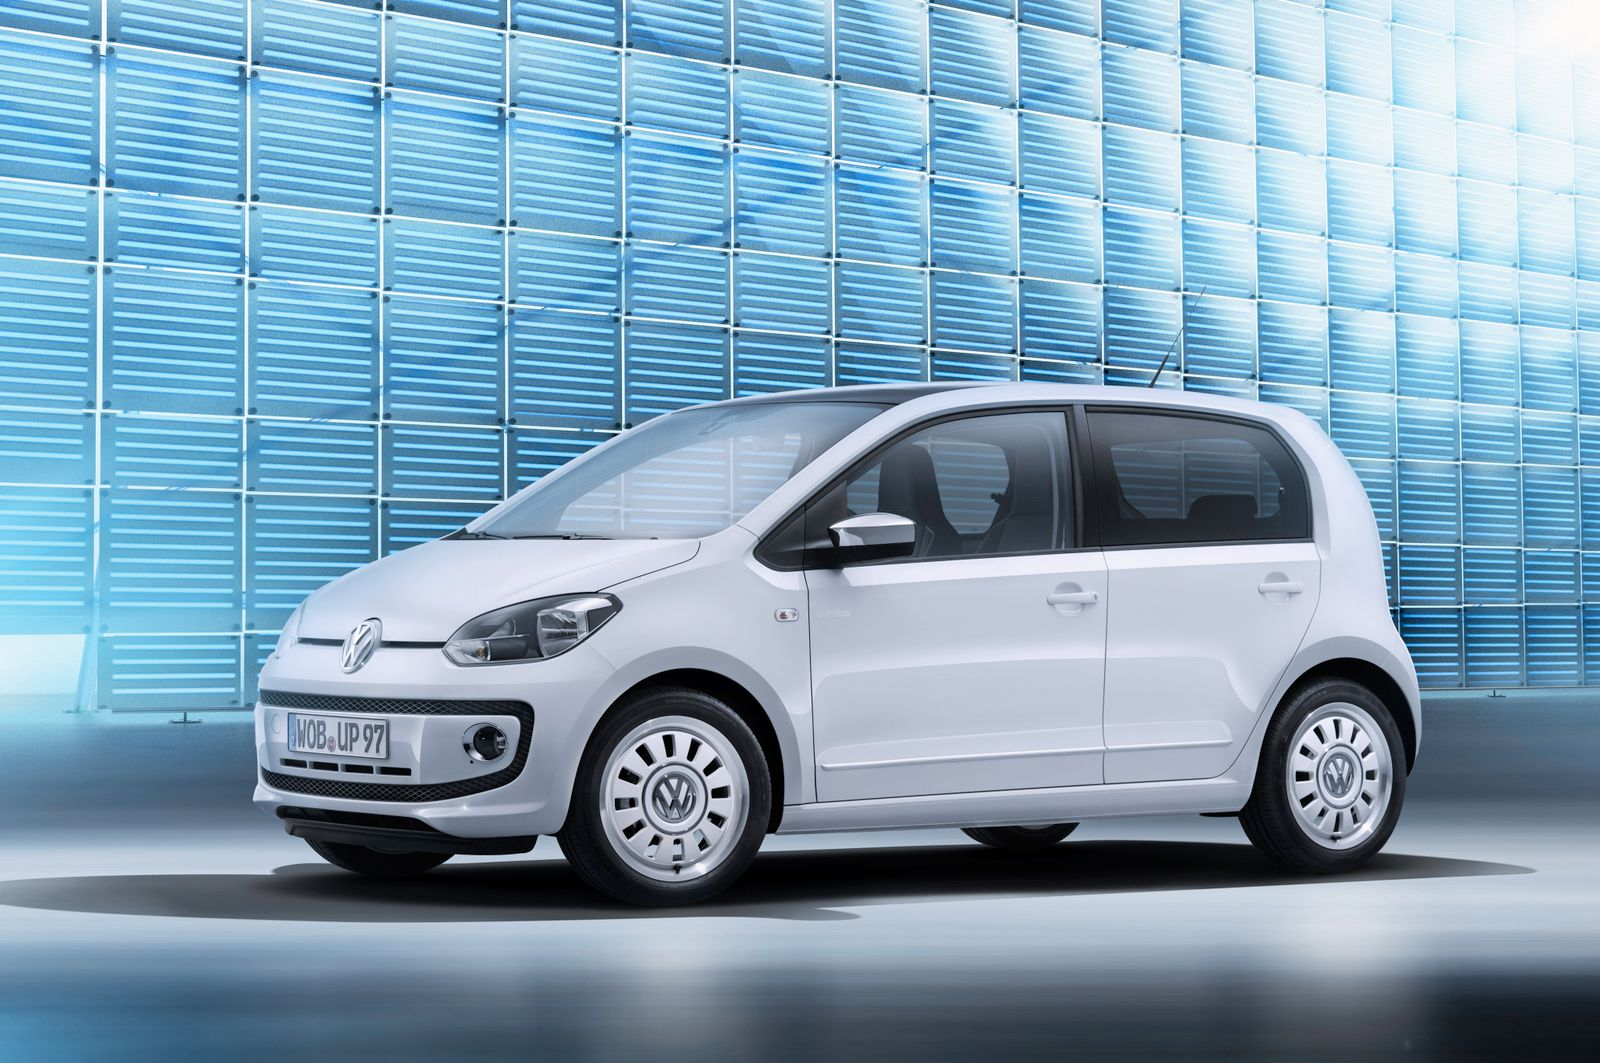 German Design Award 2013 / VW Up!